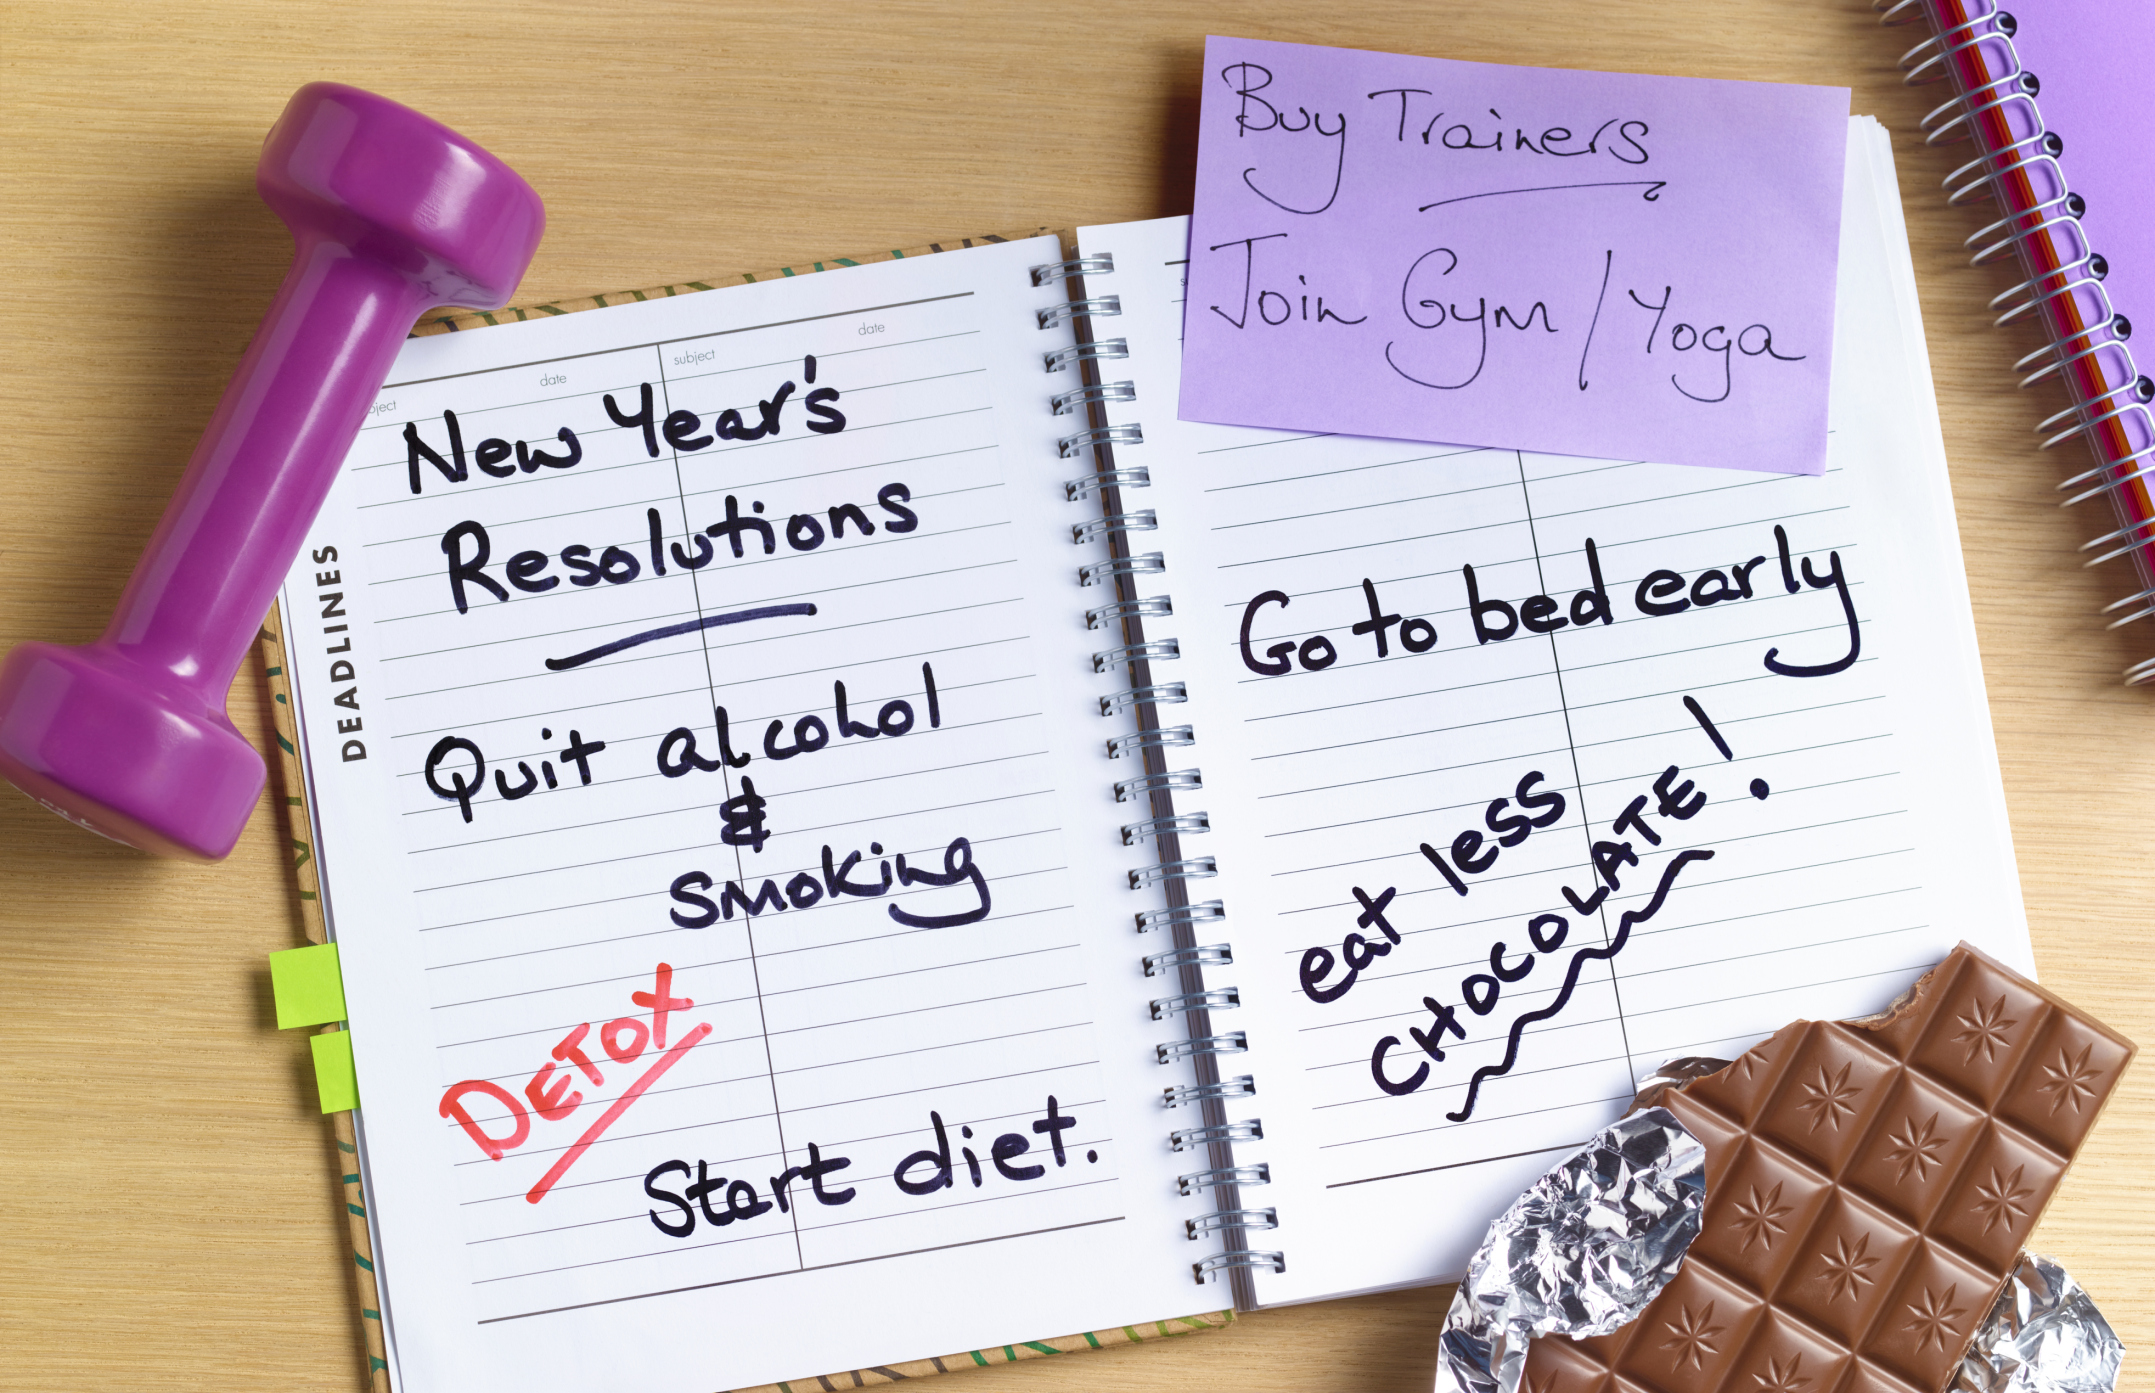 9 New Year's resolutions you shouldn't bother making this year